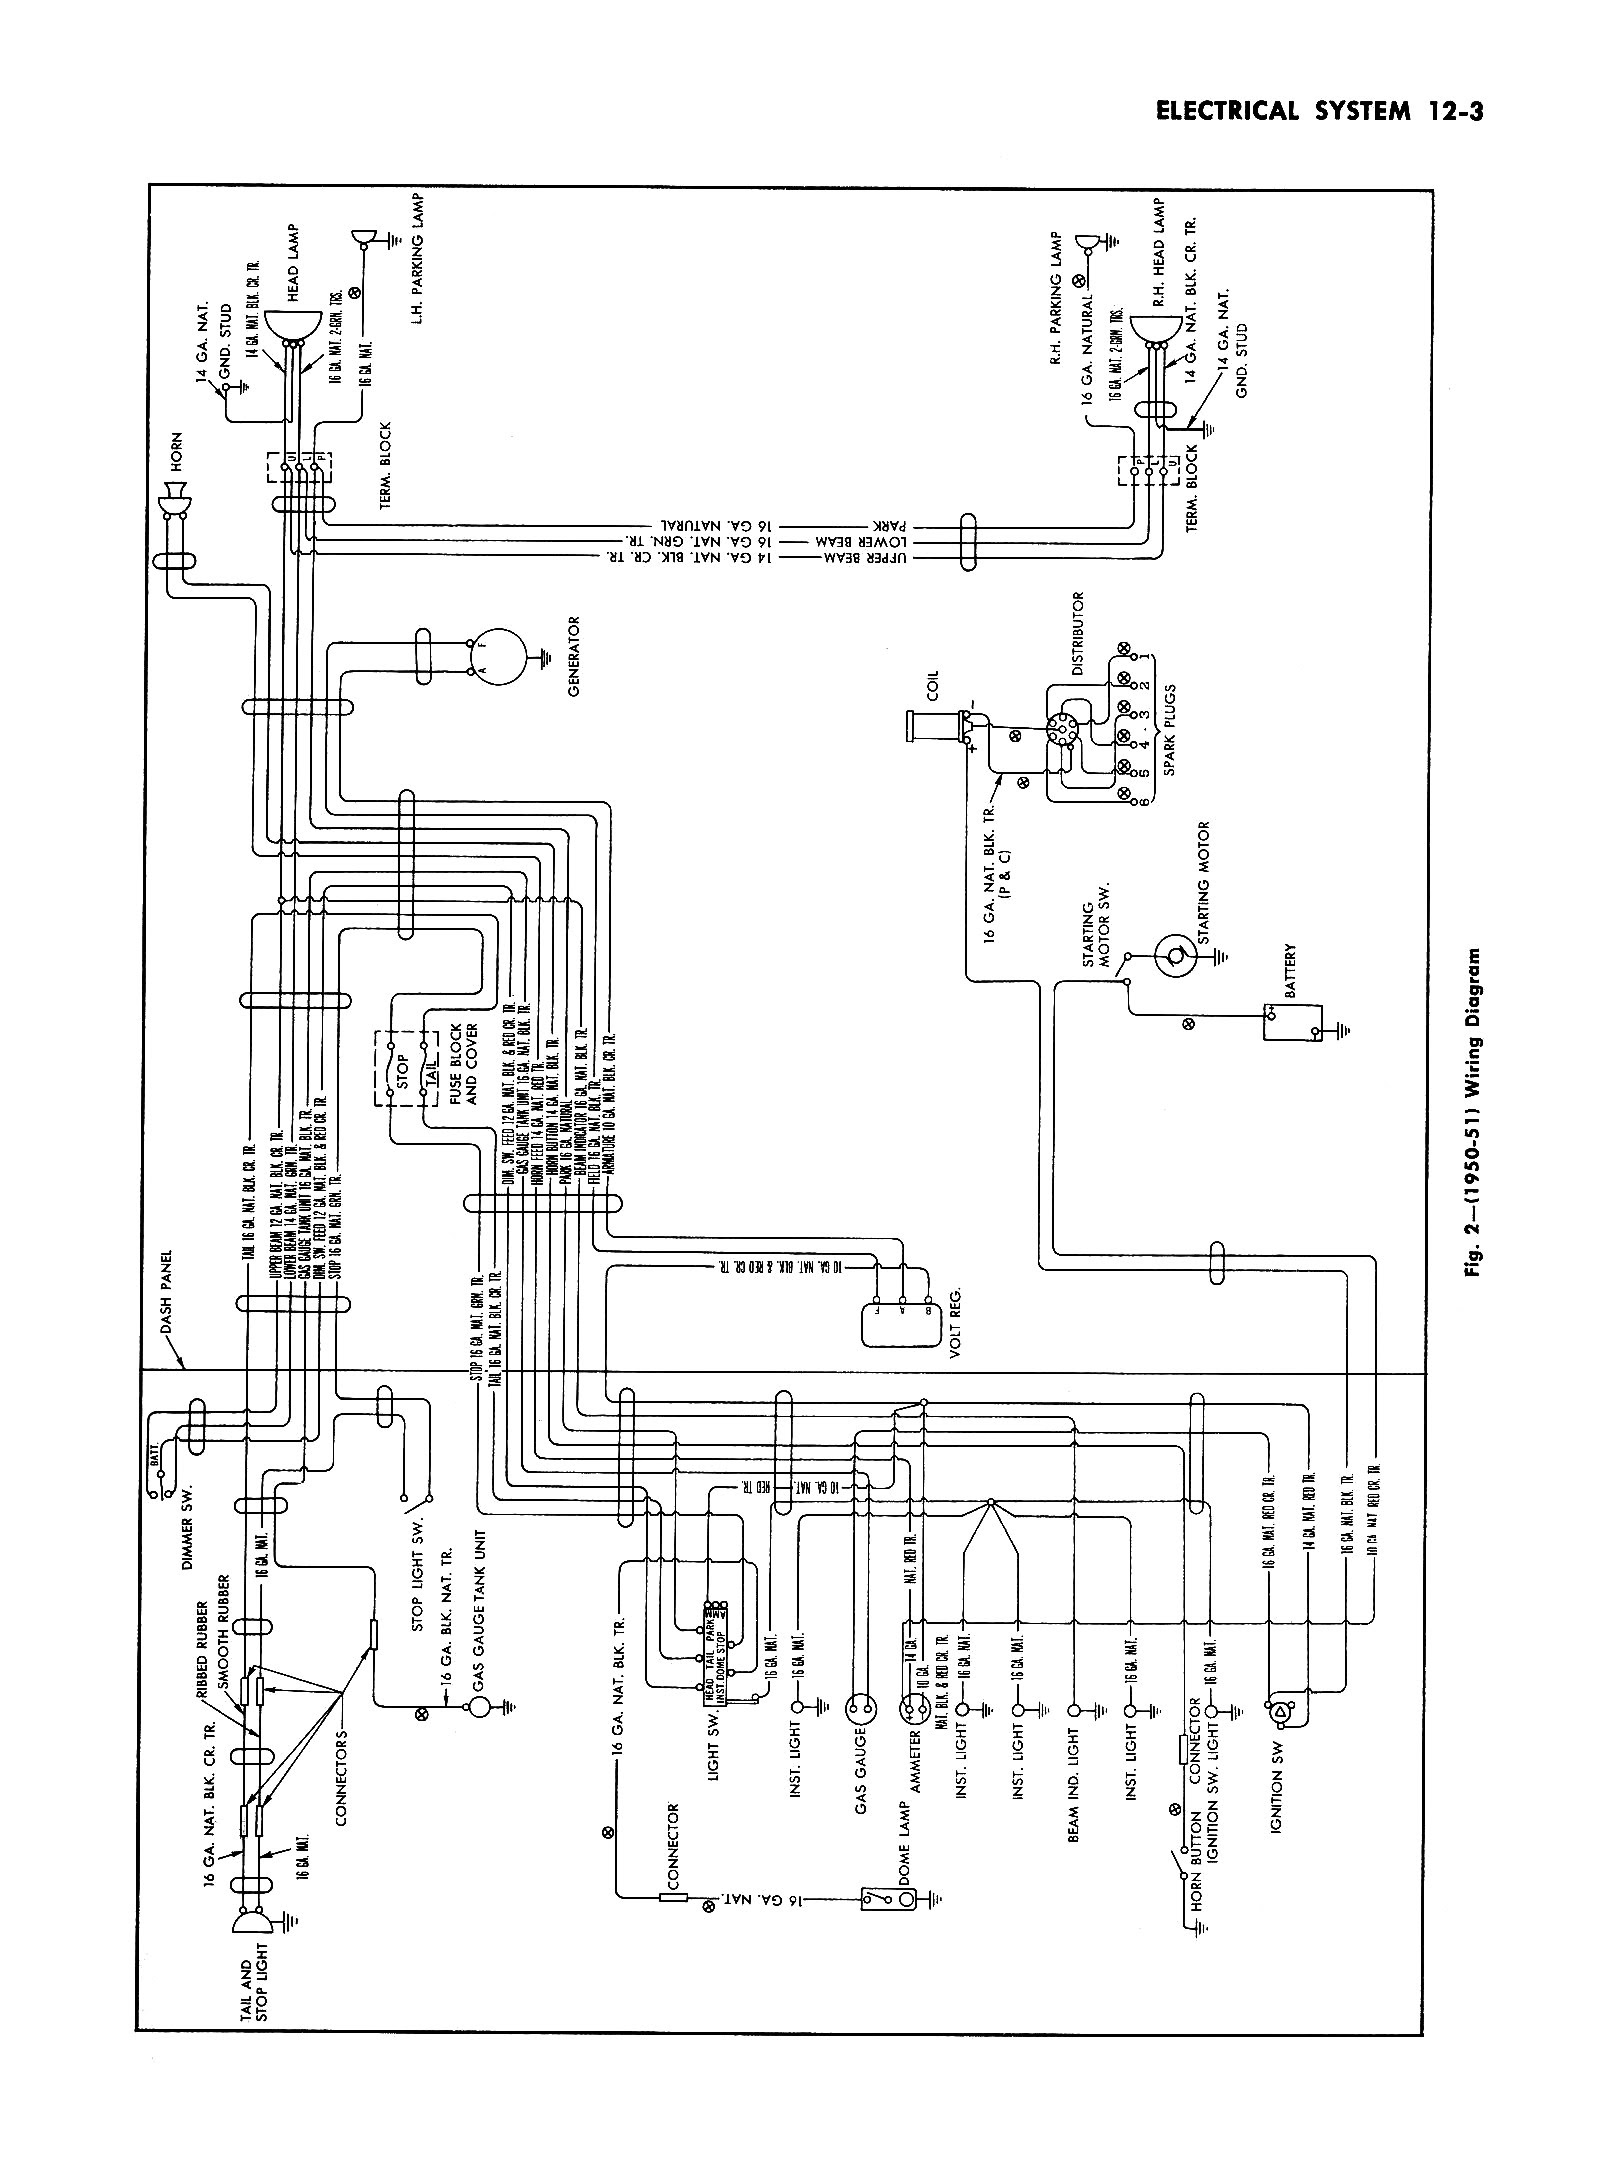 1955 Plymouth Wire Harness Diagram Freezer Wiring Diagram Of A Room For Wiring Diagram Schematics